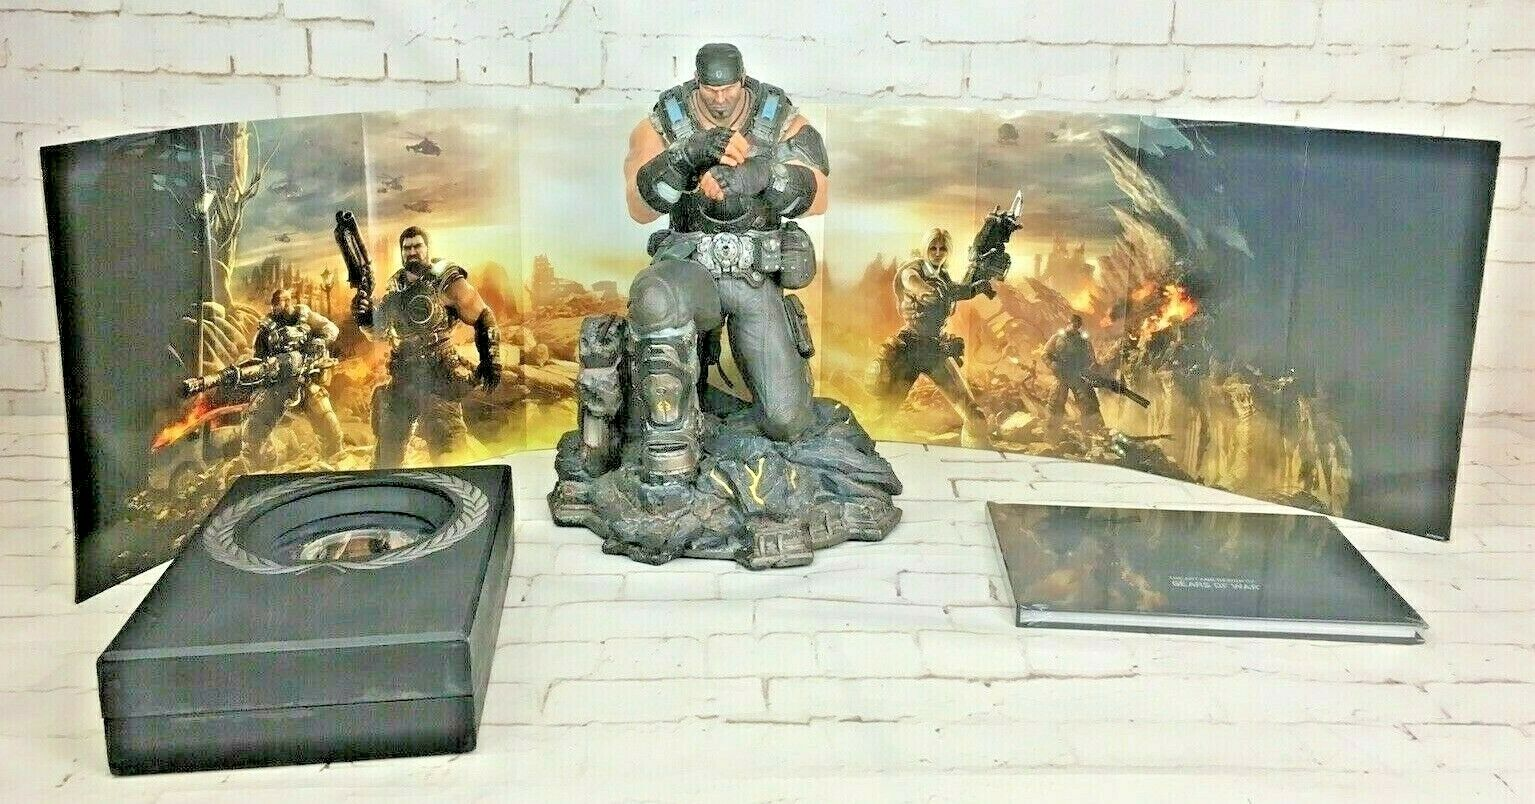 Gears of war 3 Epic Edition Collectors Special Edition XBOX 360